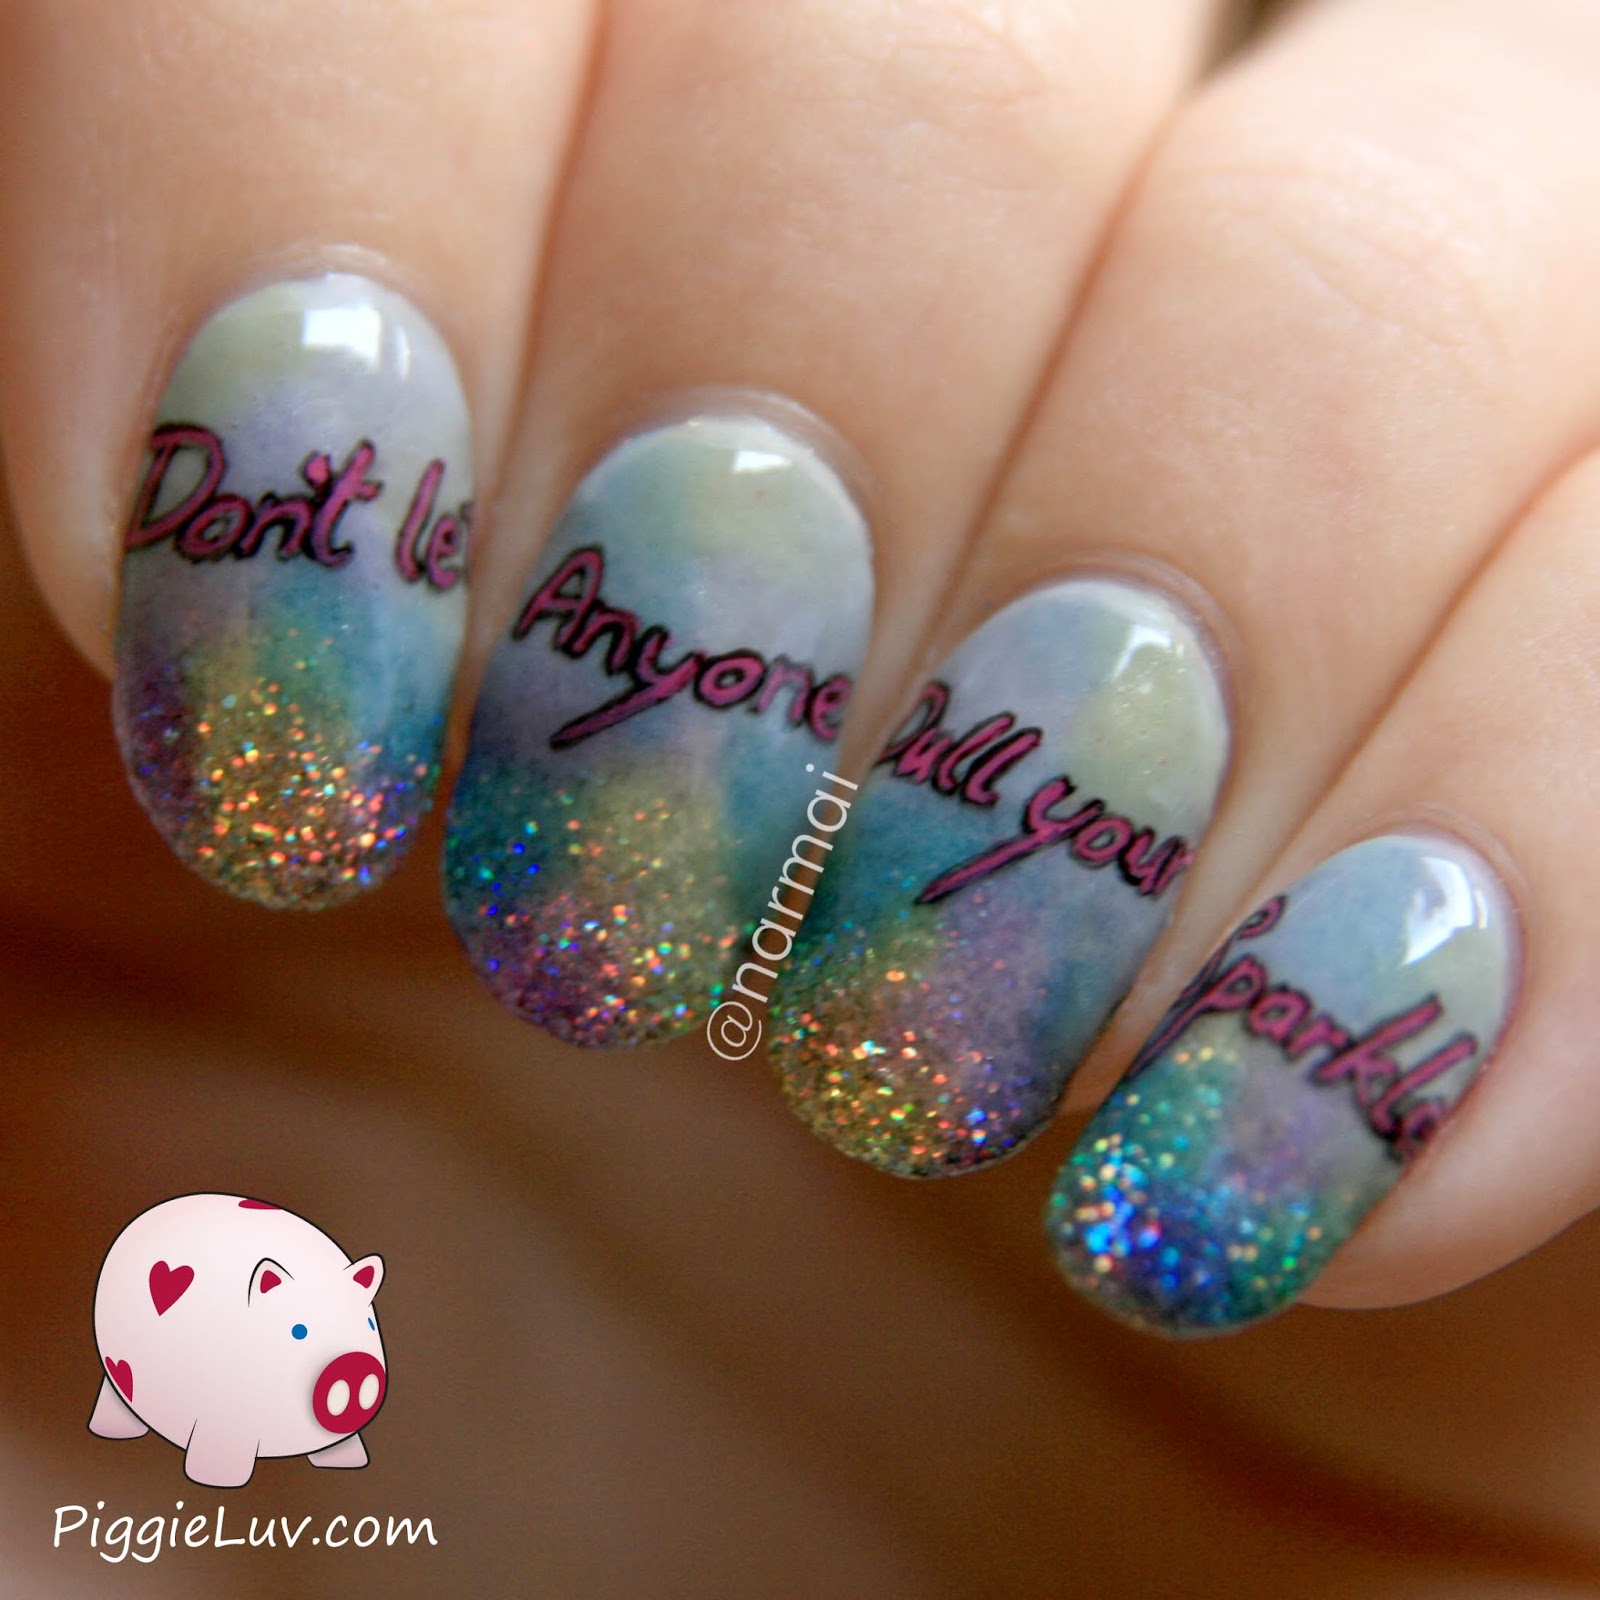 Piggieluv Dont Let Anyone Dull Your Sparkle Nail Art With A Message